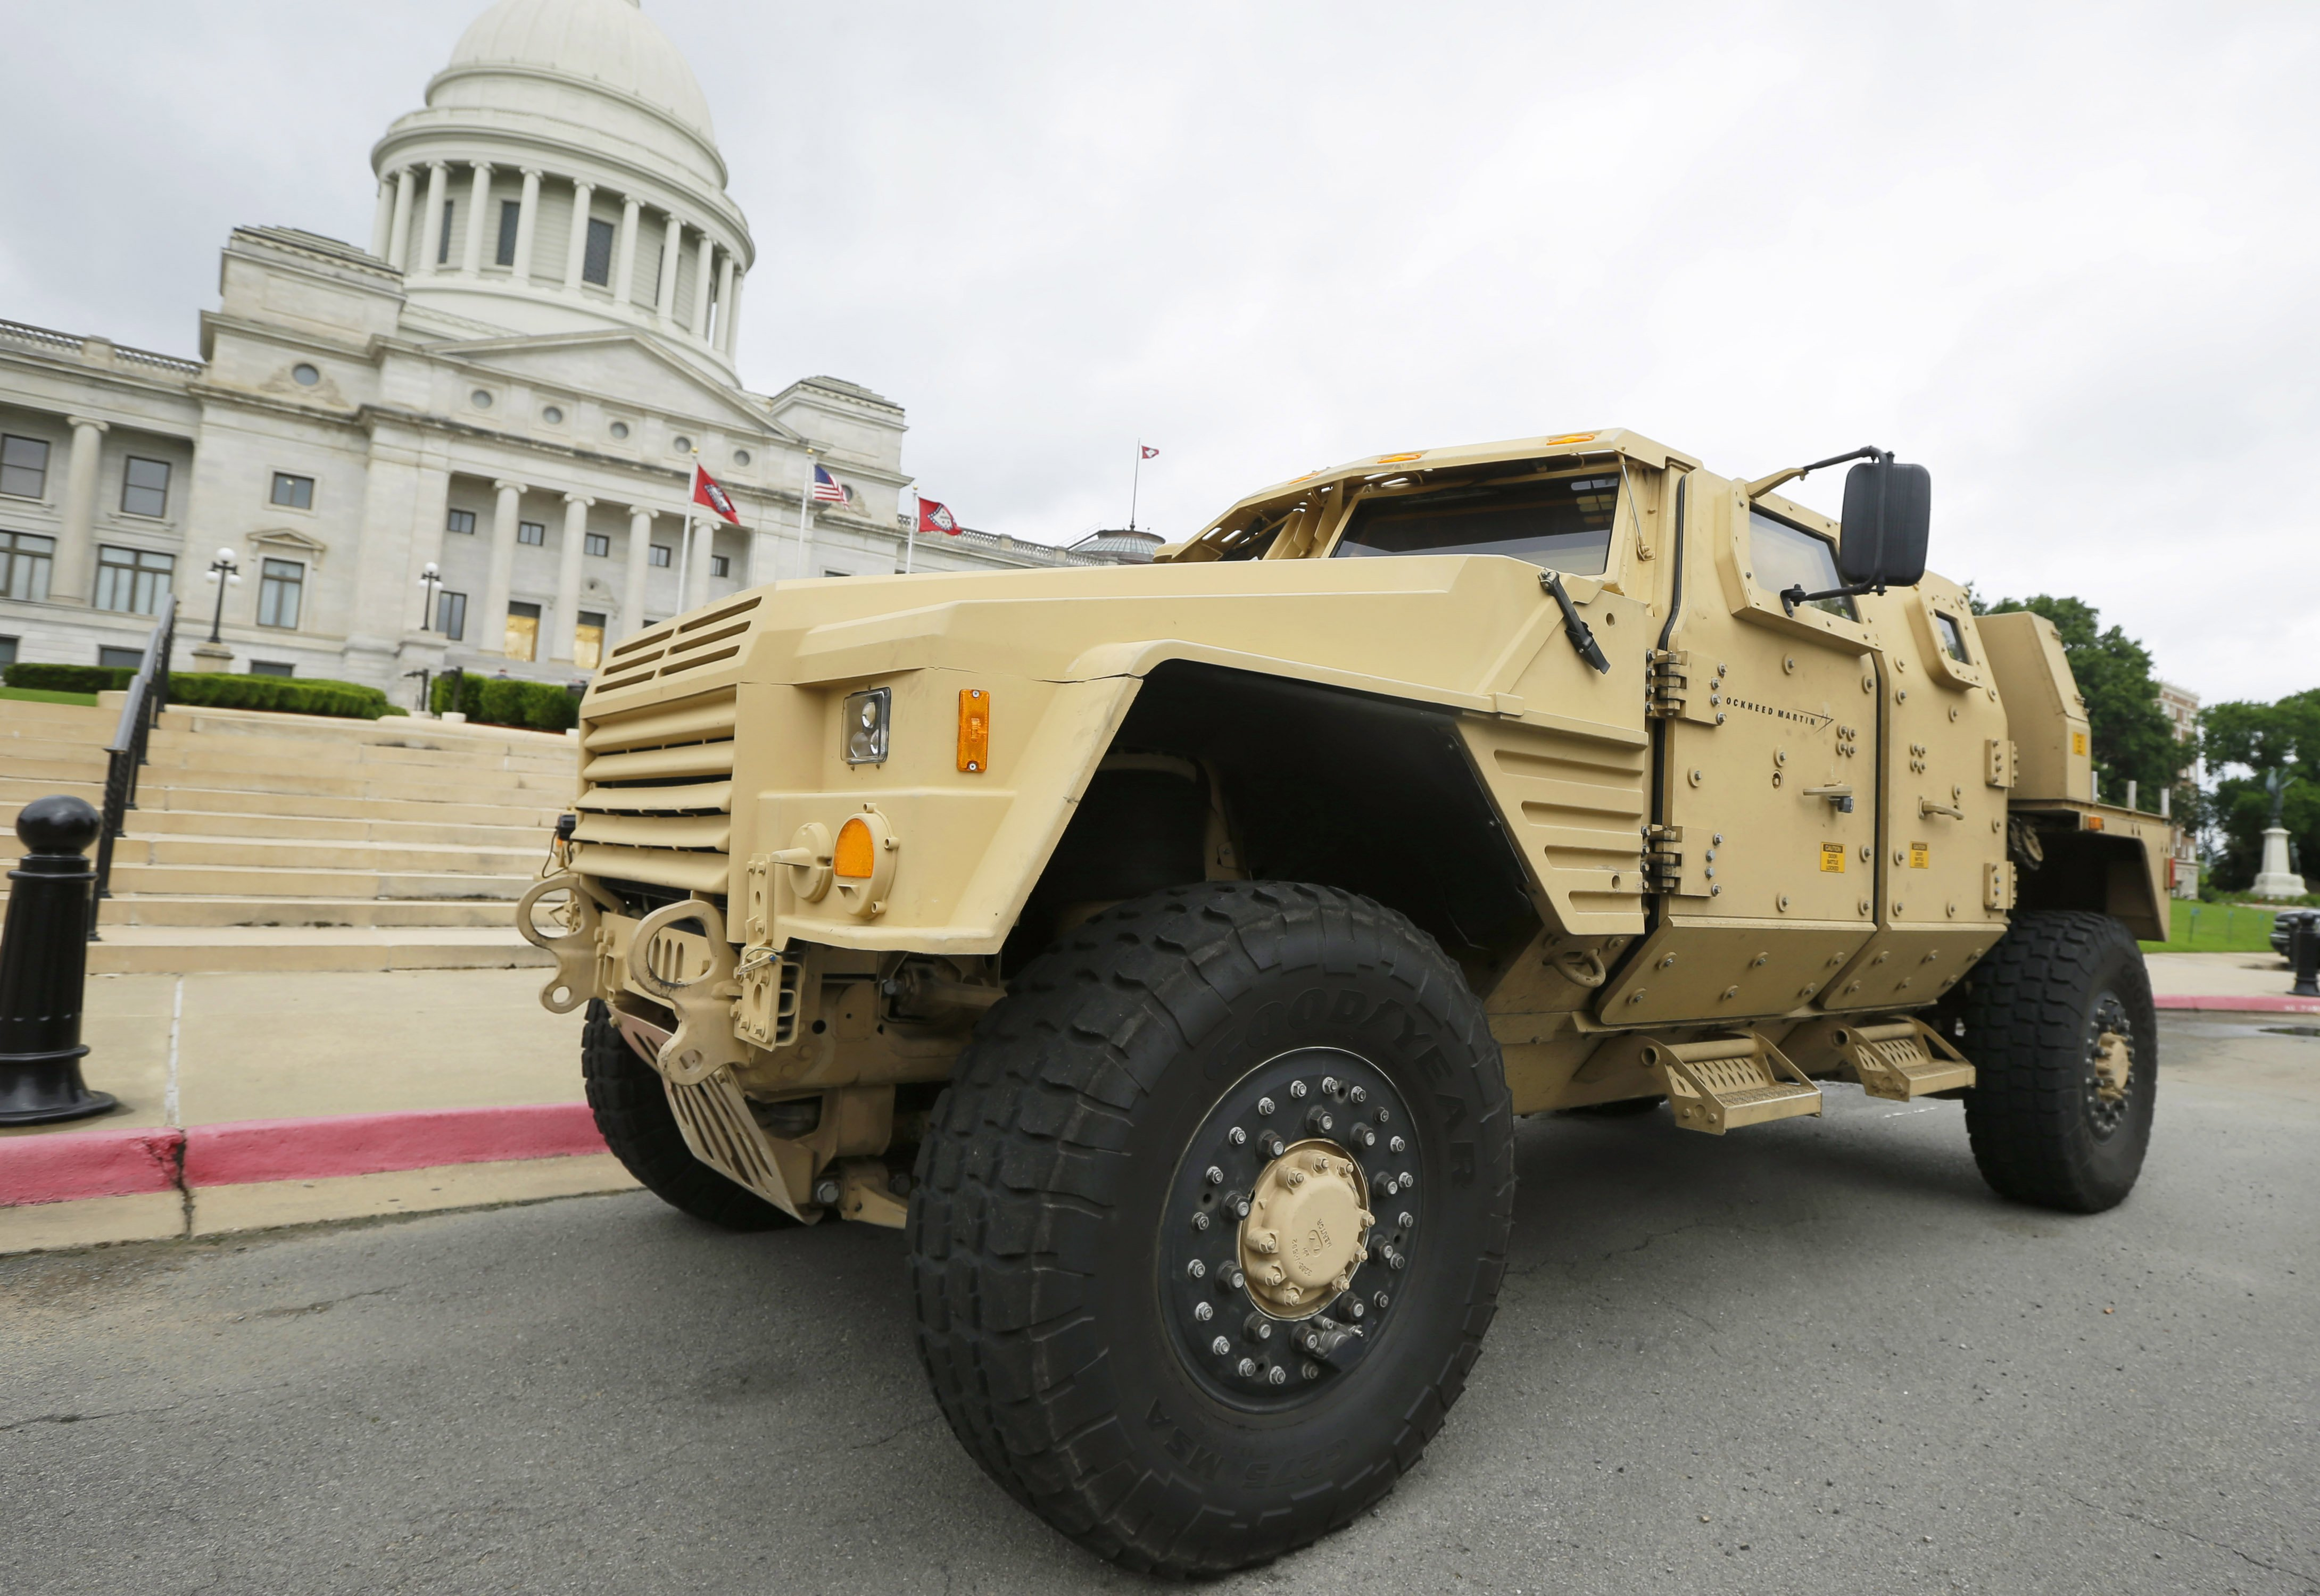 Prototype of a Lockheed Martin Joint Light Tactical Vehicle parked in front of the Arkansas state Capitol in Little Rock, Ark. on May 26, 2015.